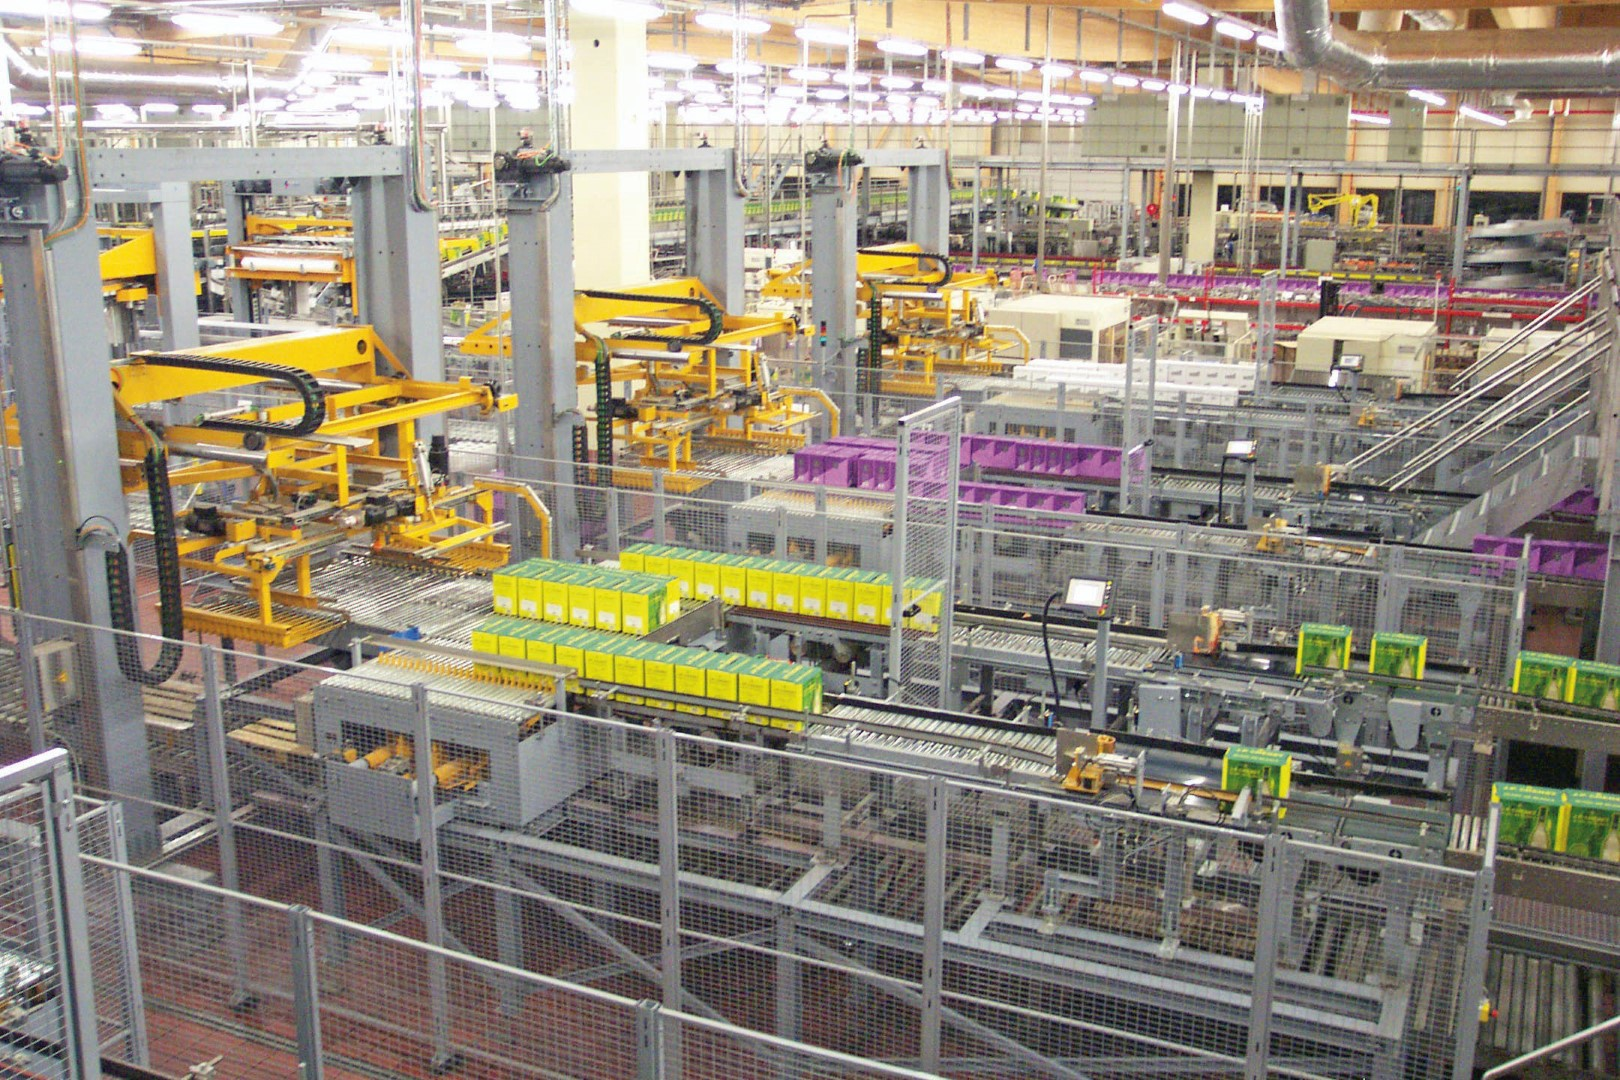 Palettierzentrum